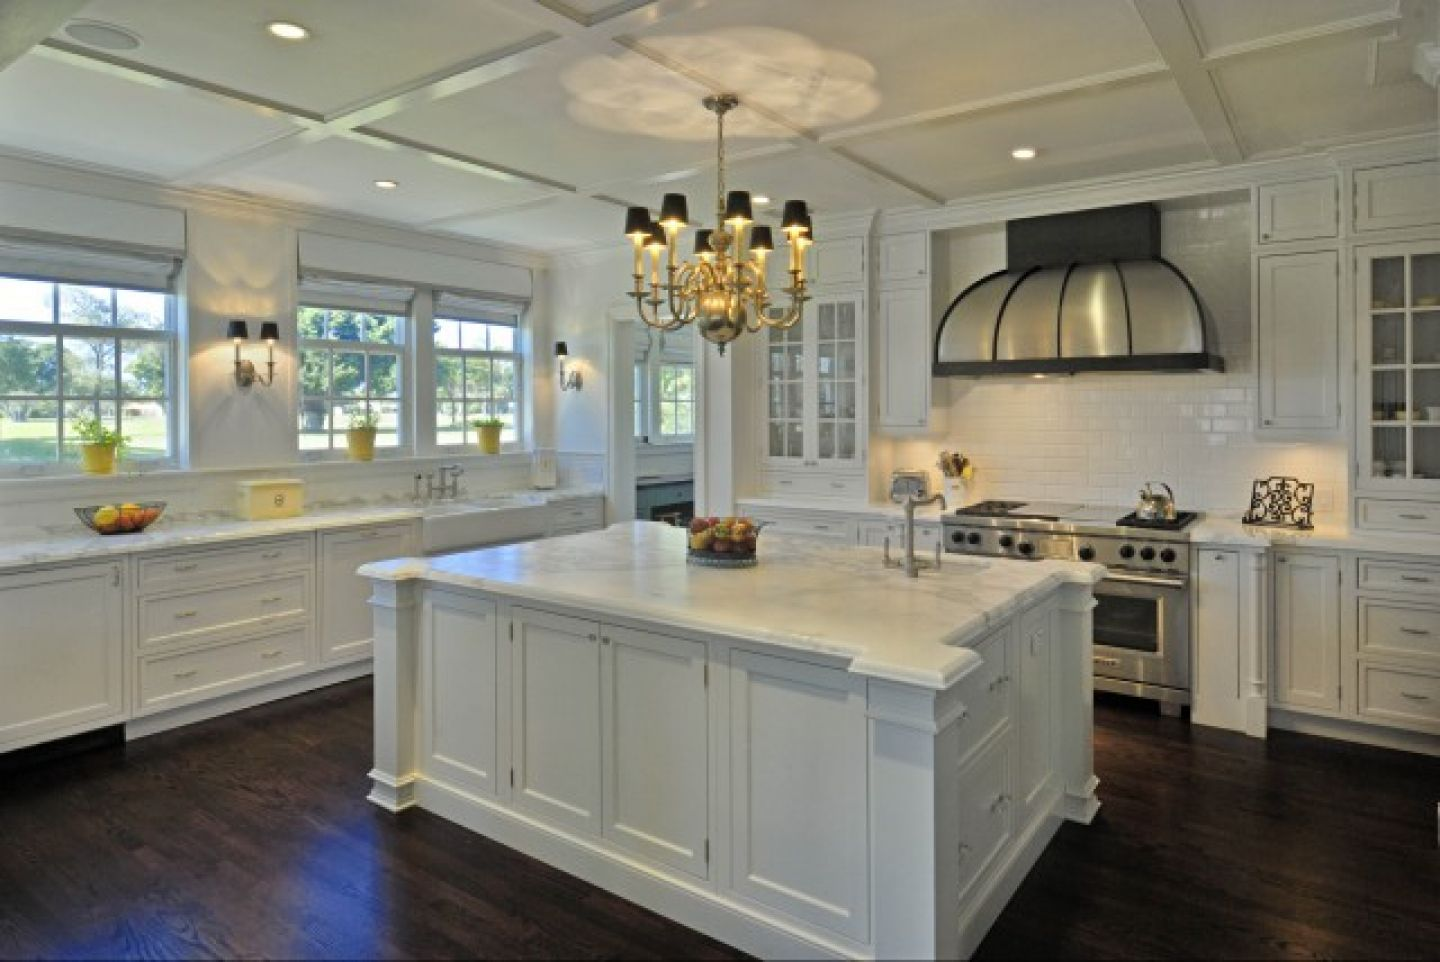 enchanting large kitchen idea | Enchanting Kitchen with White Cabinets - MidCityEast